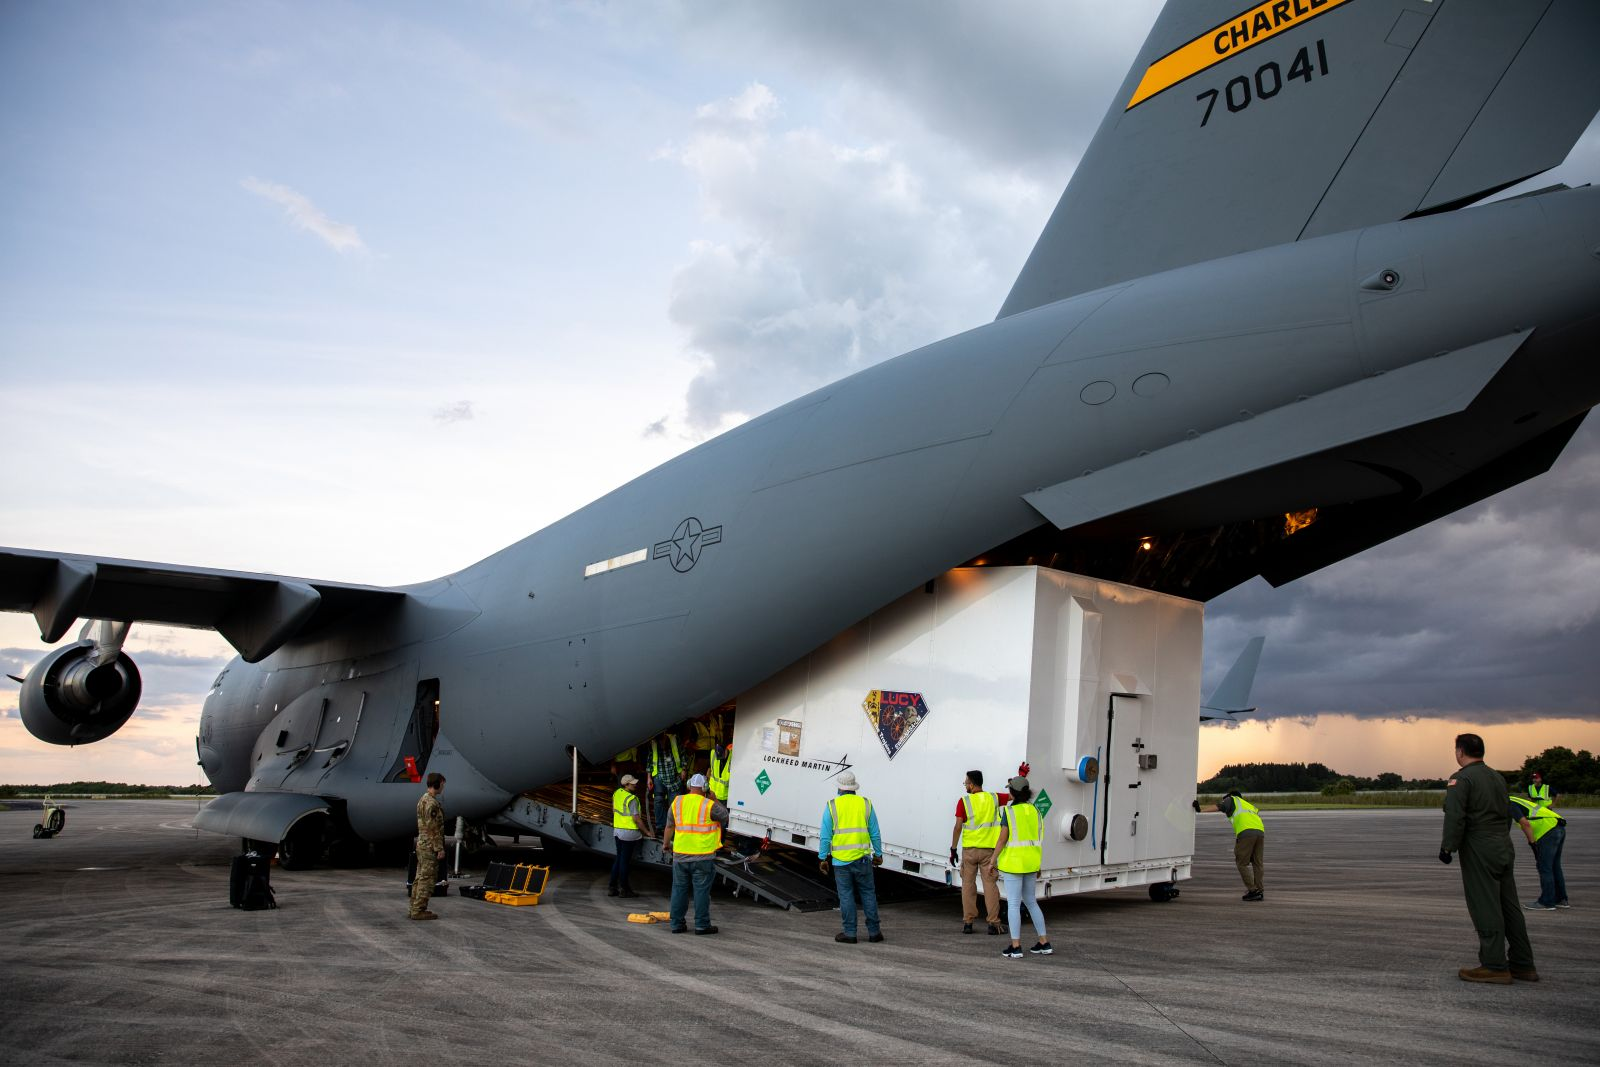 NASA's Lucy Trojan asteroid mission spacecraft is offloaded from a U.S. Air Force C-17 cargo plane after it arrives at Kennedy Space Center in Florida. Credit: NASA